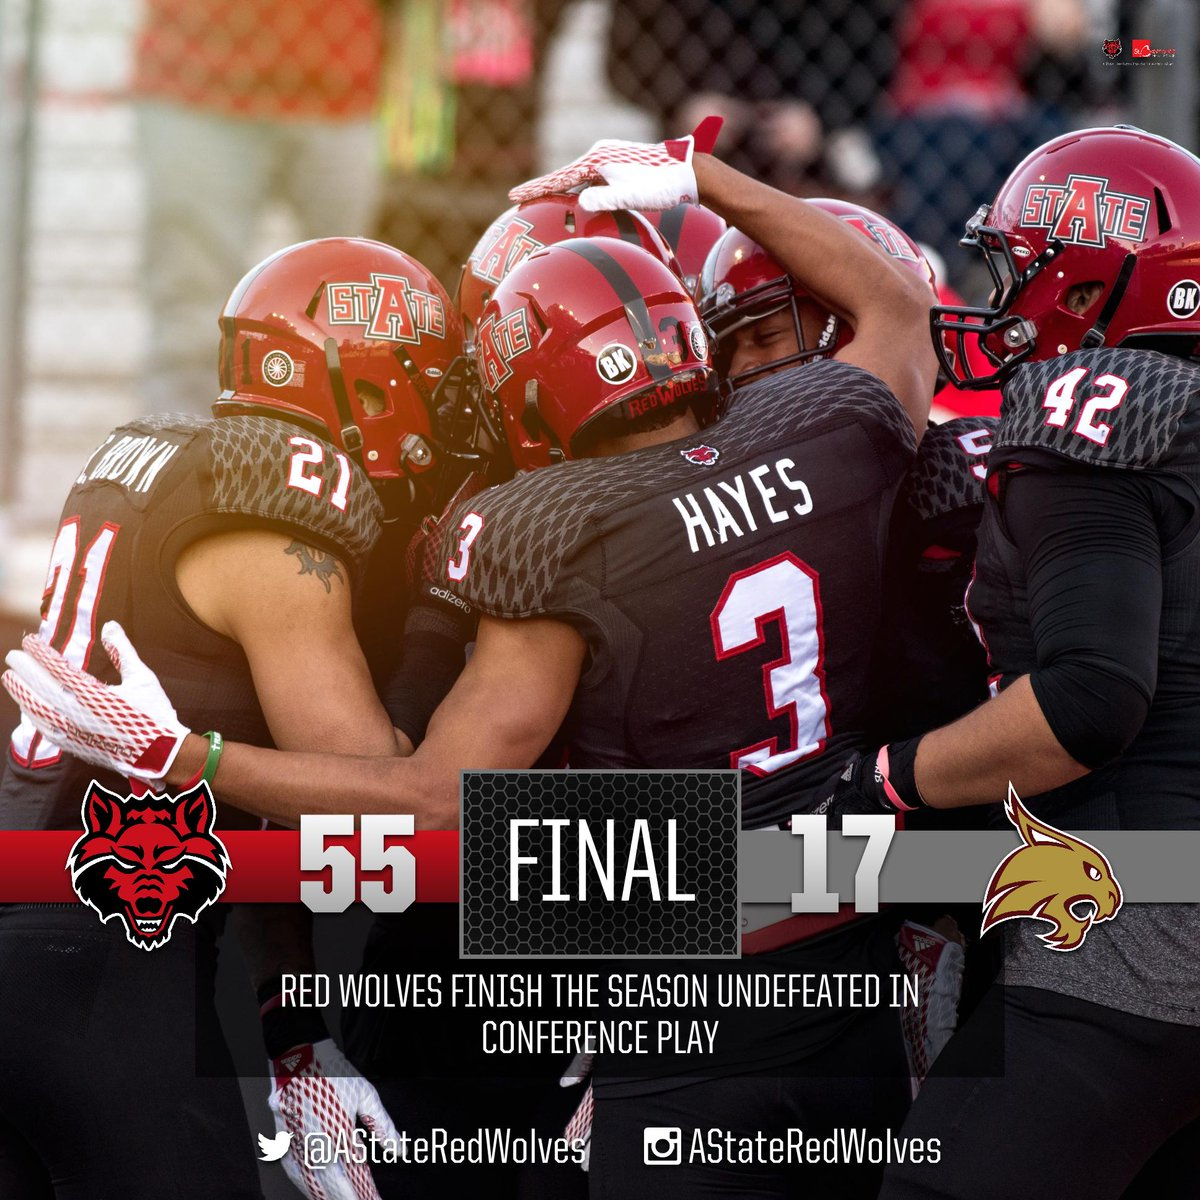 SUN BELT CHAMPS! A-State defeats Texas State 55-17 #WolvesUp https://t.co/zNFeCYihvp